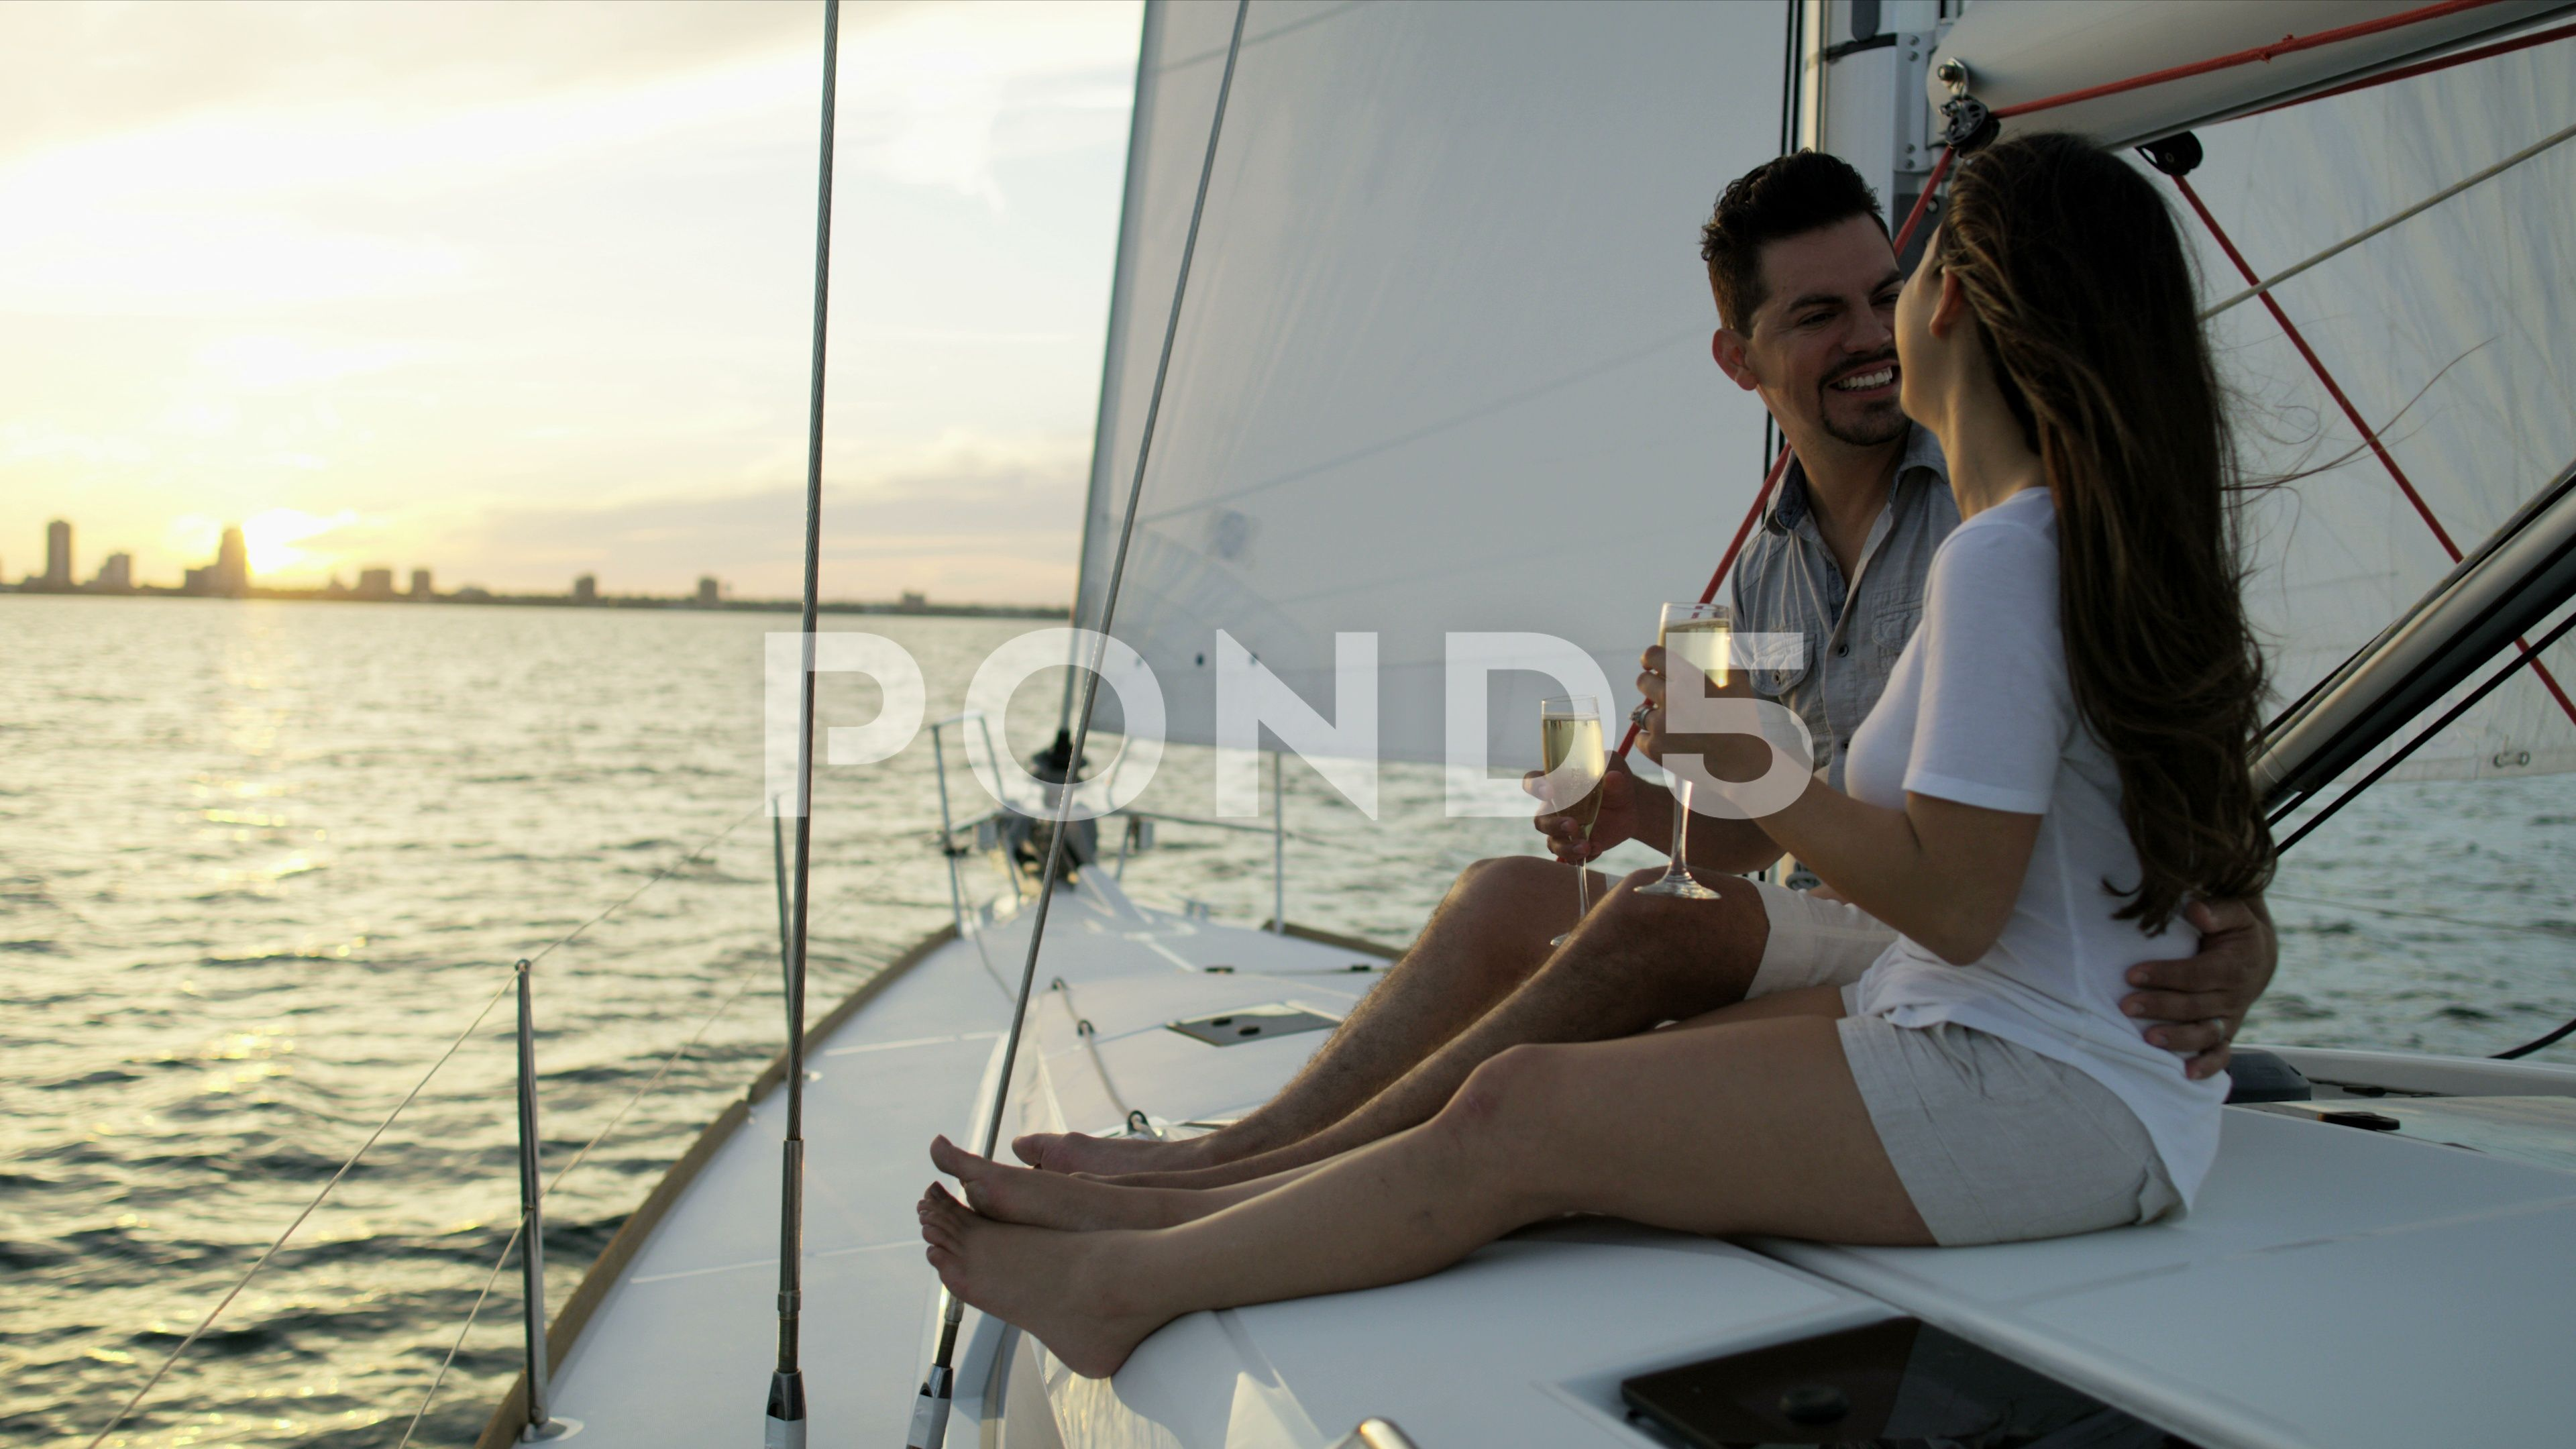 Carefree Latin American Couple At Leisure Sailing The Ocean On